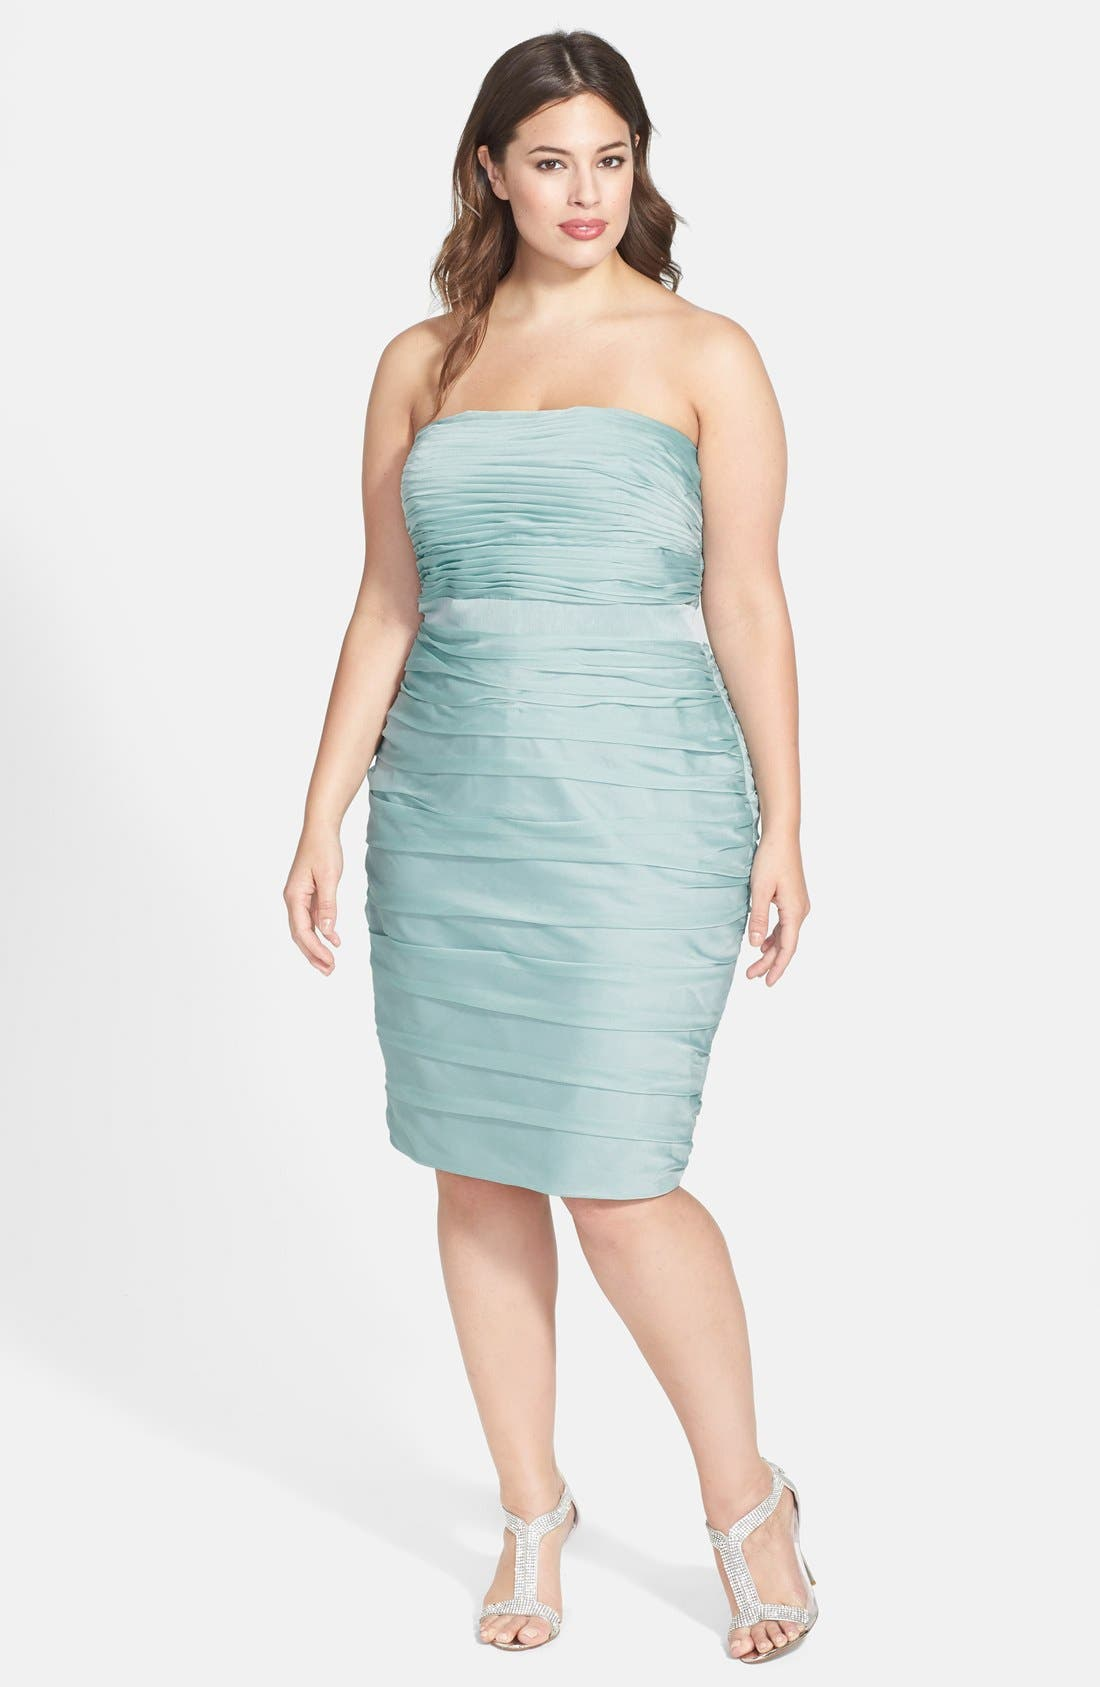 Alternate Image 1 Selected - ML Monique Lhuillier Bridesmaids Ruched Strapless Cationic Chiffon Dress (Nordstrom Exclusive) (Plus Size)